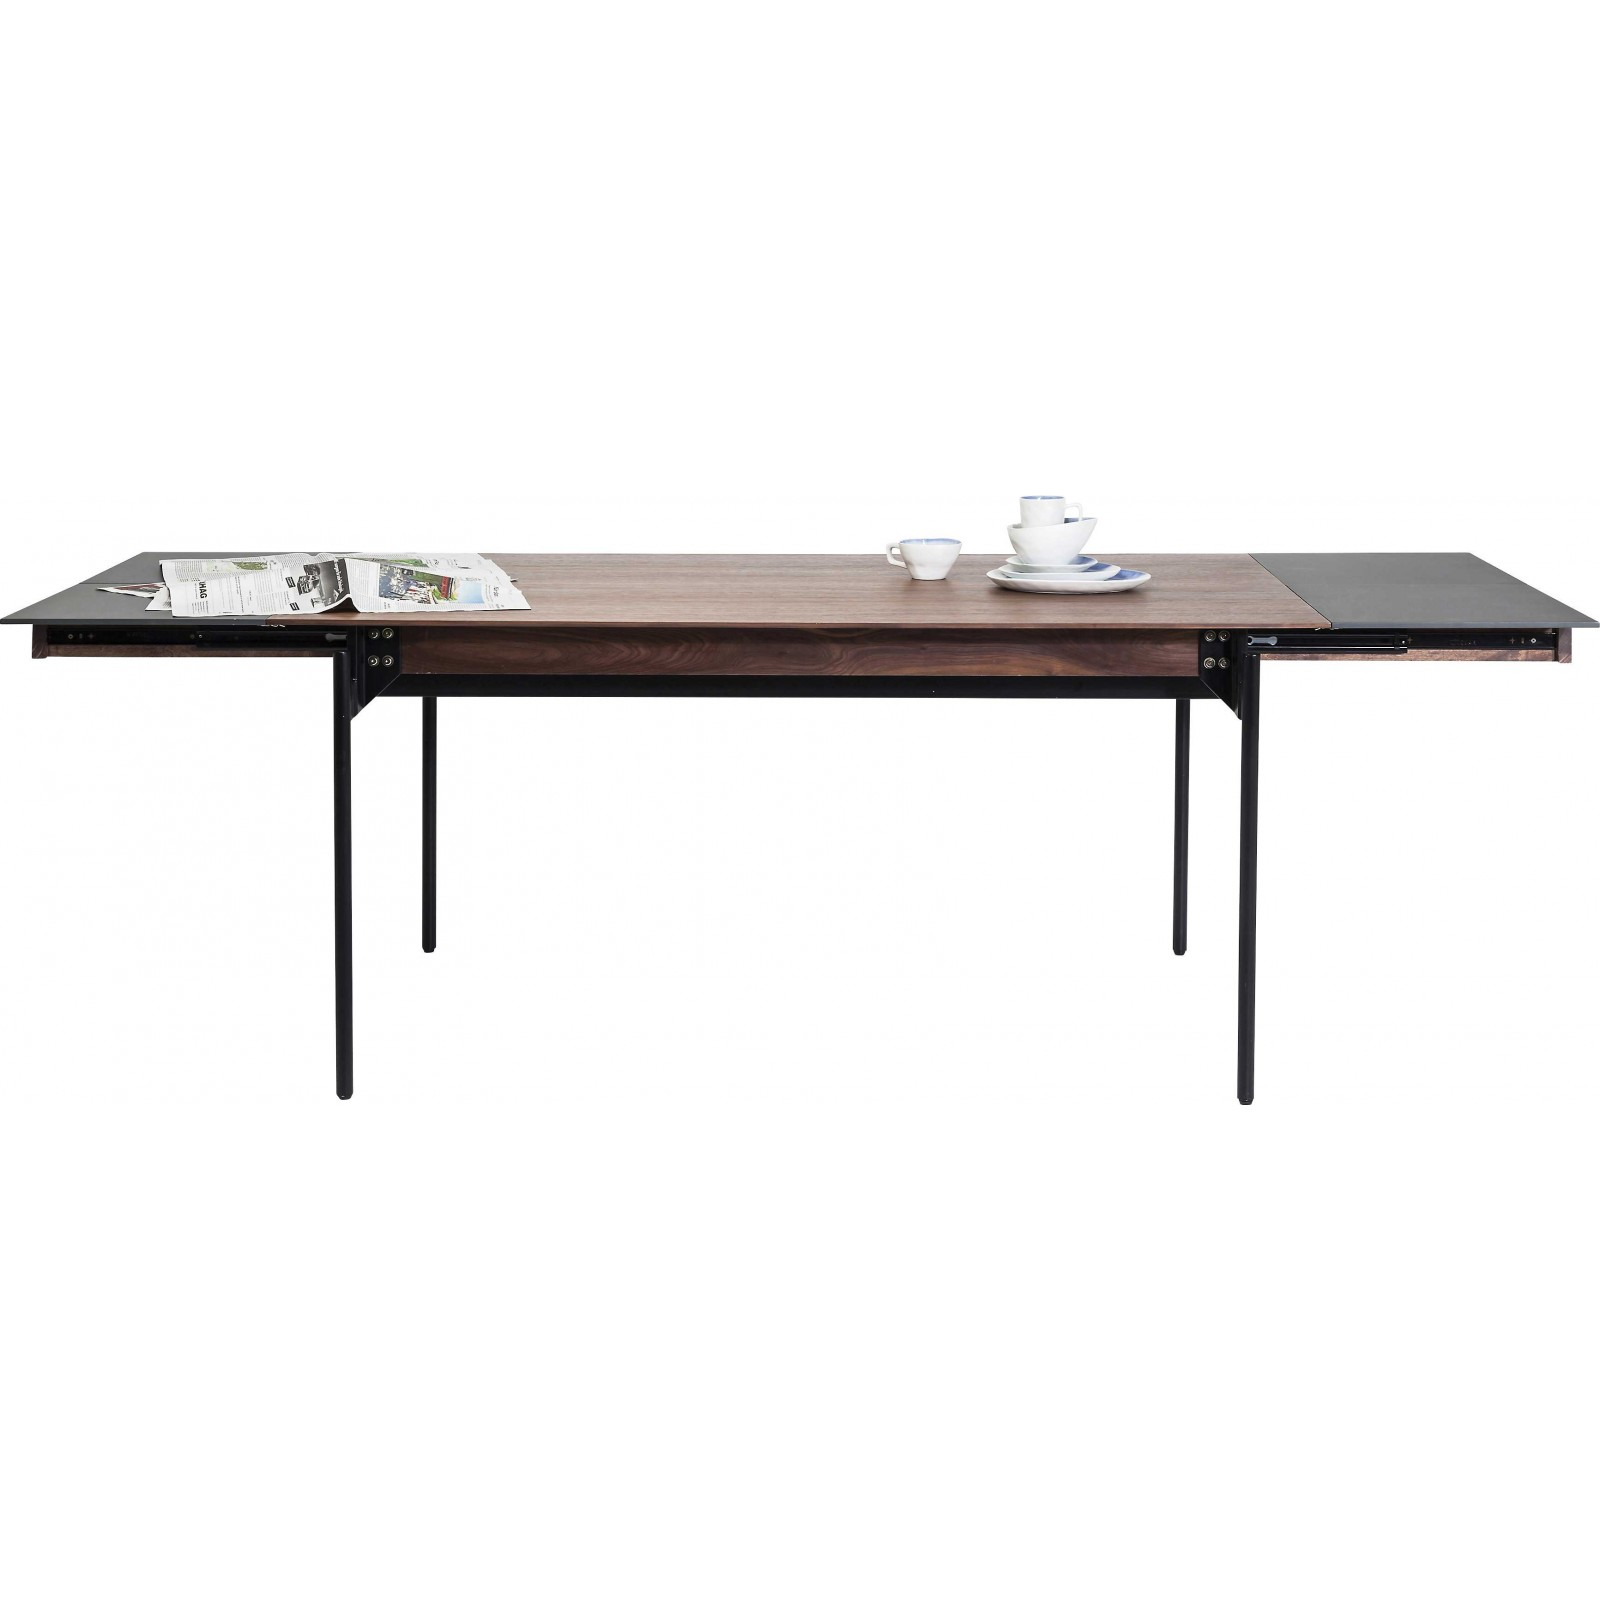 Table rallonges undercover 160 240x90 cm kare design for Table 160 cm avec rallonge